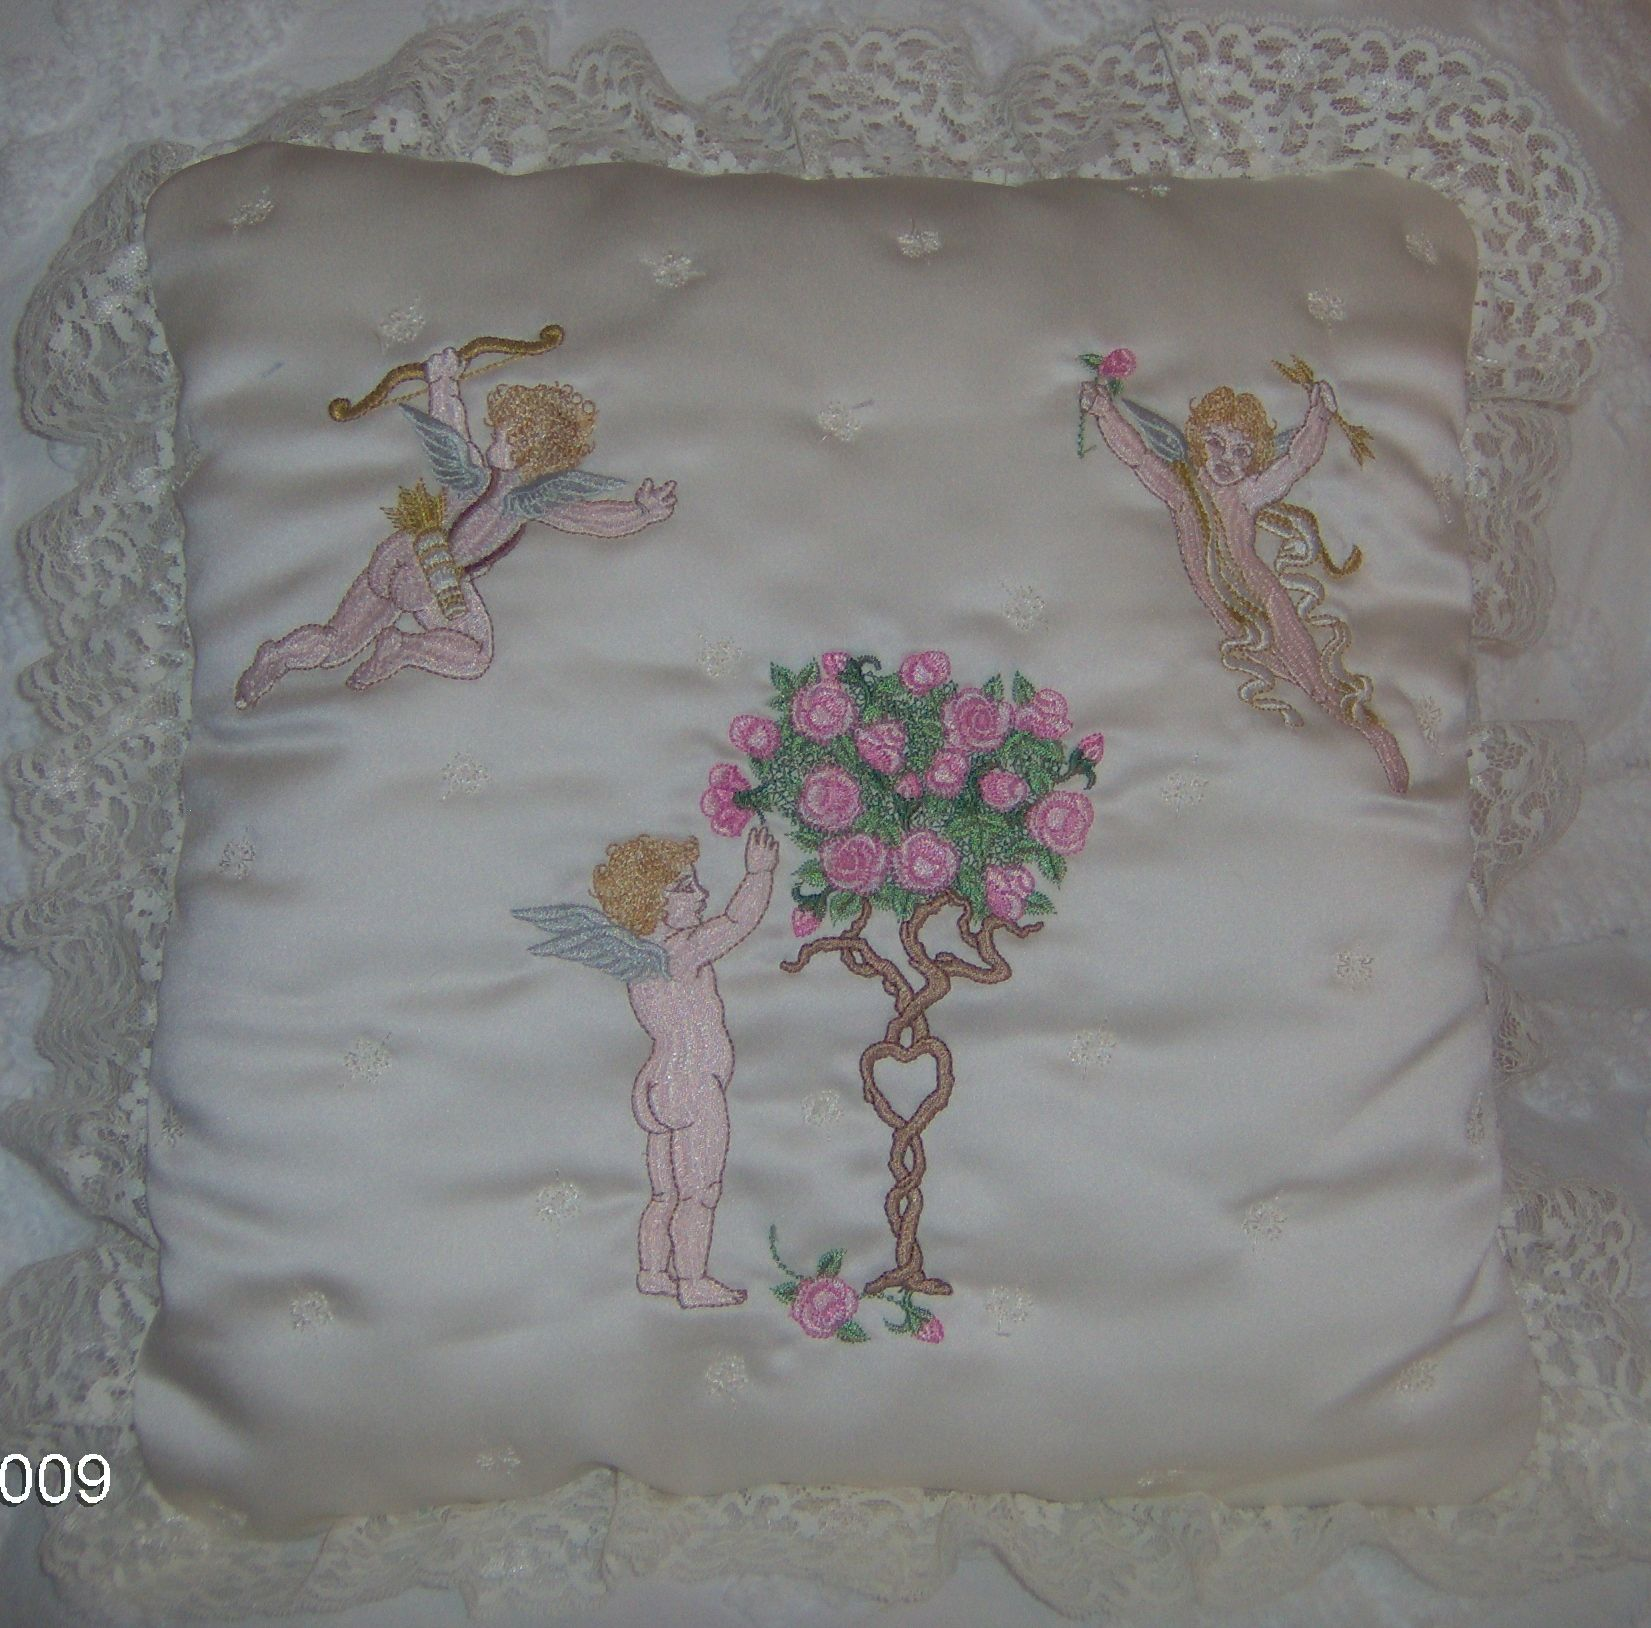 Cherub pillow designs by suebox machine embroiderycross